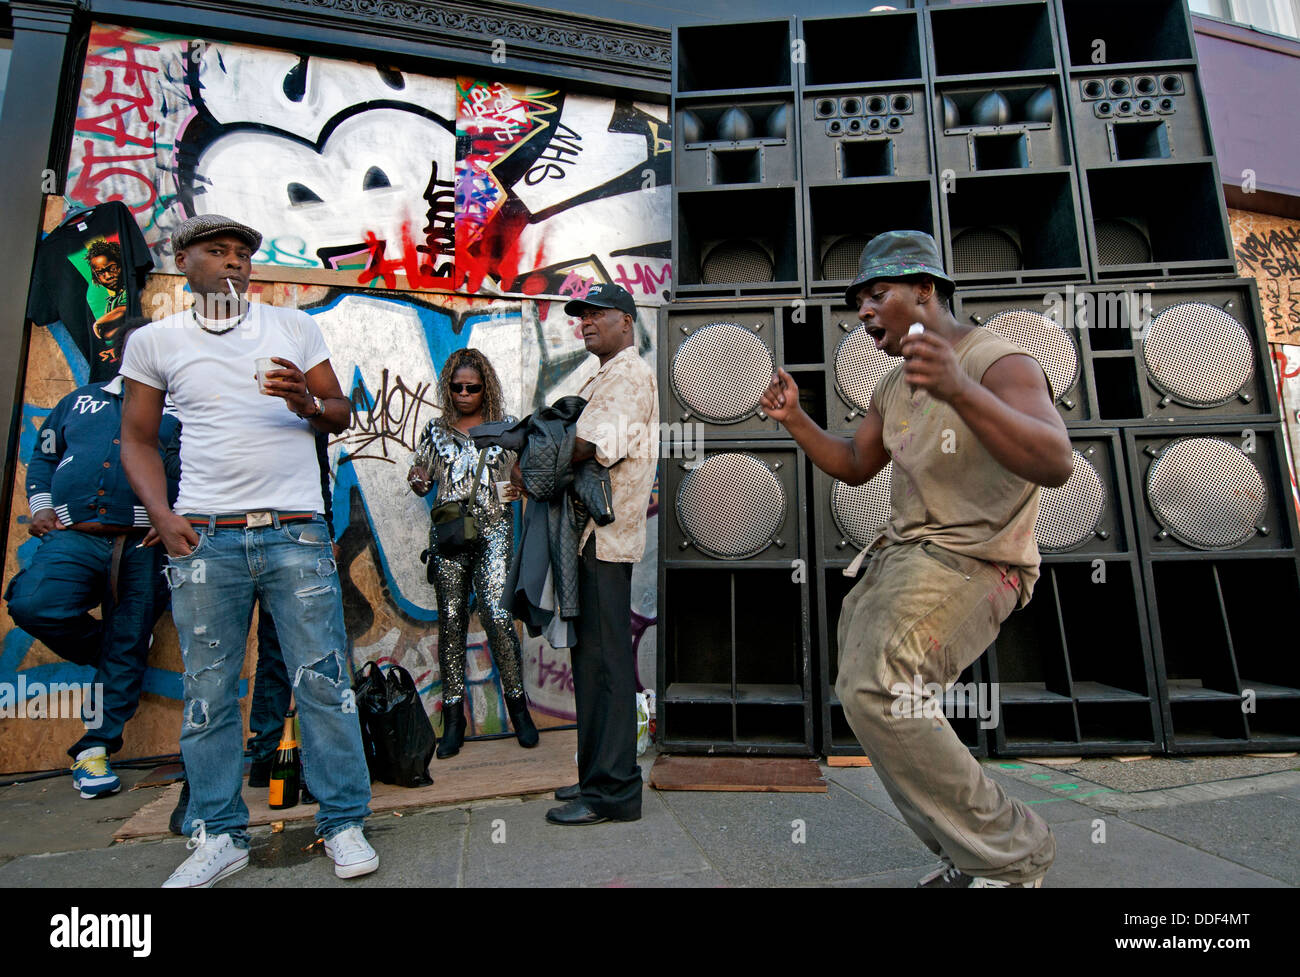 Side street with large sound system speakers at Notting Hill Carnival - Stock Image